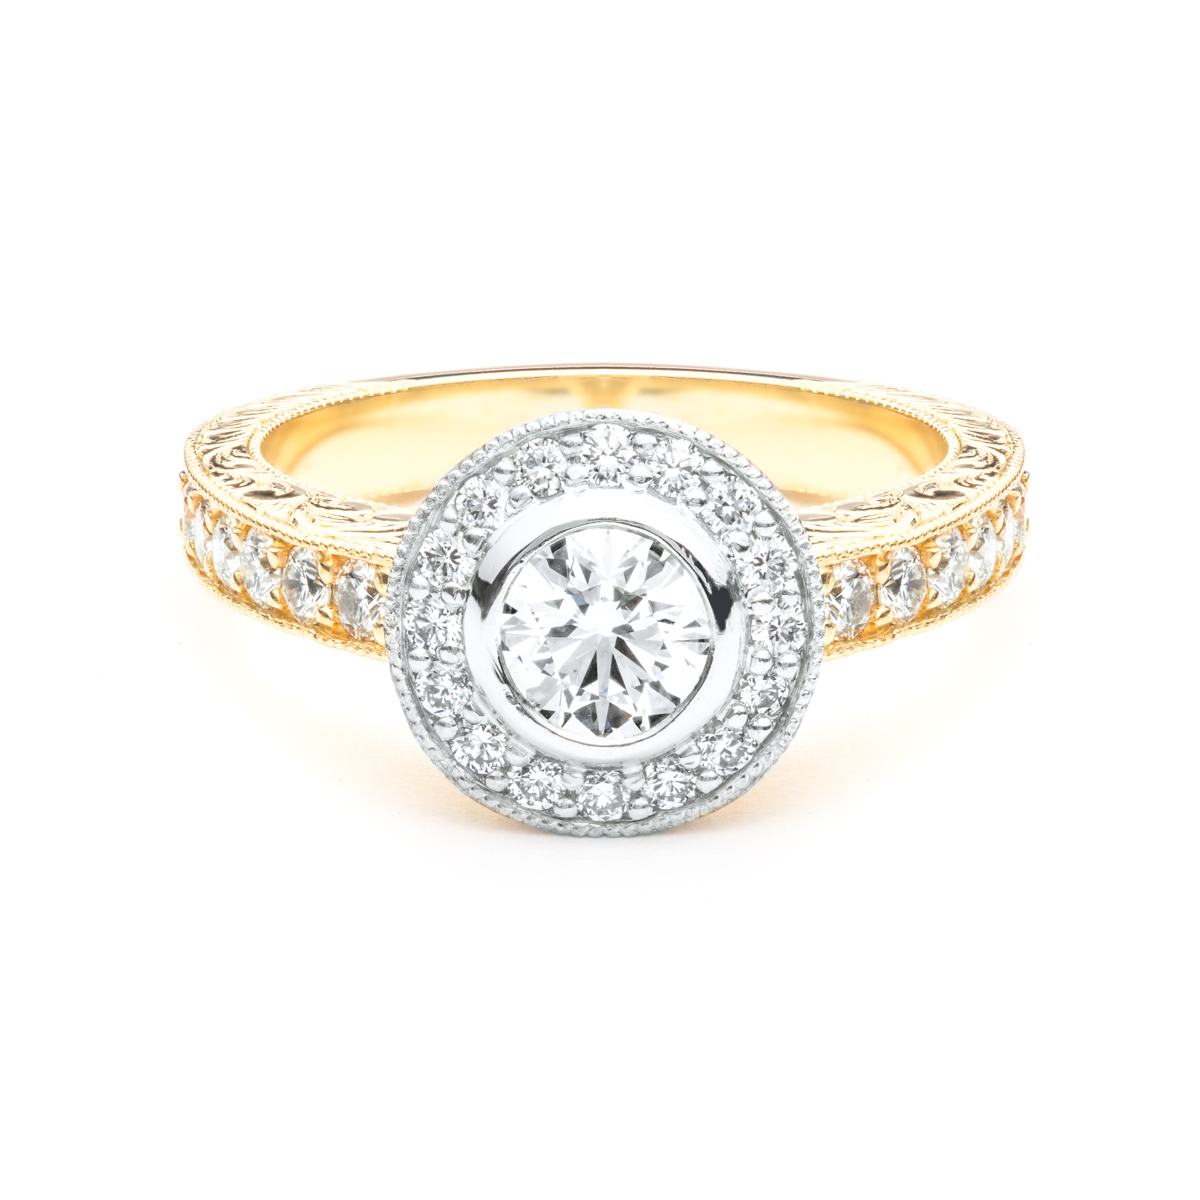 The Ester Hand Engraved Engagement Ring